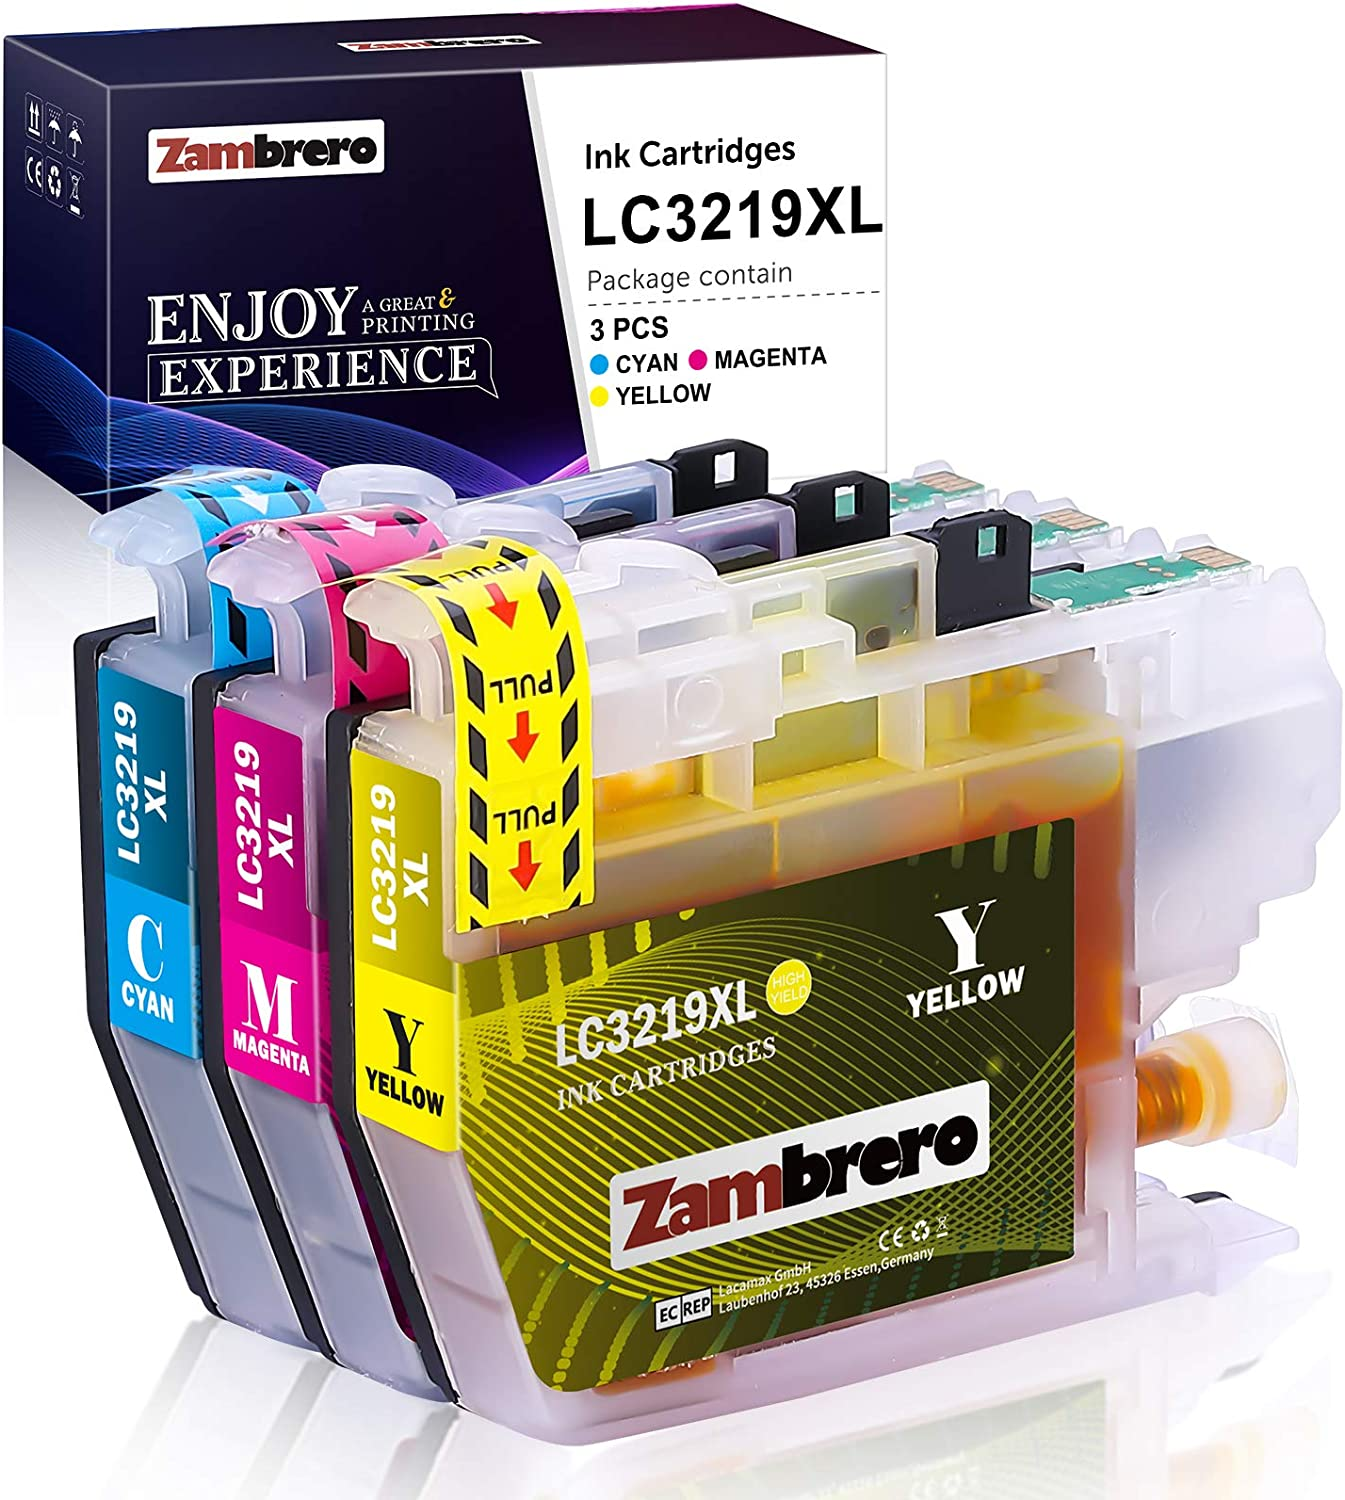 Zambrero Lc3219xl Colour Ink Cartridges Replacement For Brother Lc3219 Lc3217 Lc 3219 Lc 3217 Printer Cartridges Compatible With Brother Mfc J5330dw Mfc J5335dw Mfc J5730dw Mfc J6930dw Mfc J6935dw Mfc J6530dw J5930dw